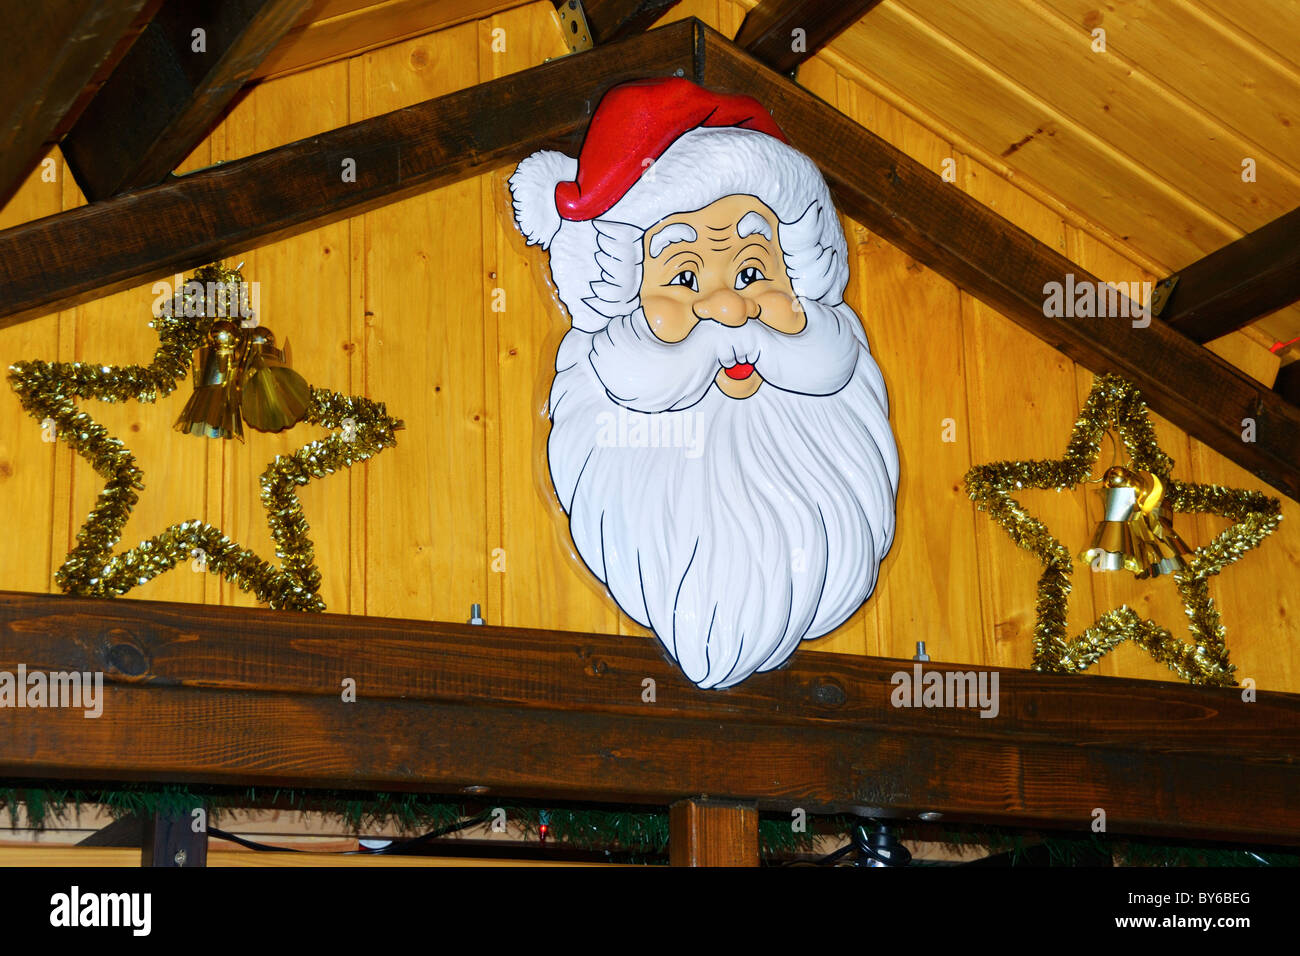 Santa Claus Boot Stock Photos & Santa Claus Boot Stock Images - Alamy